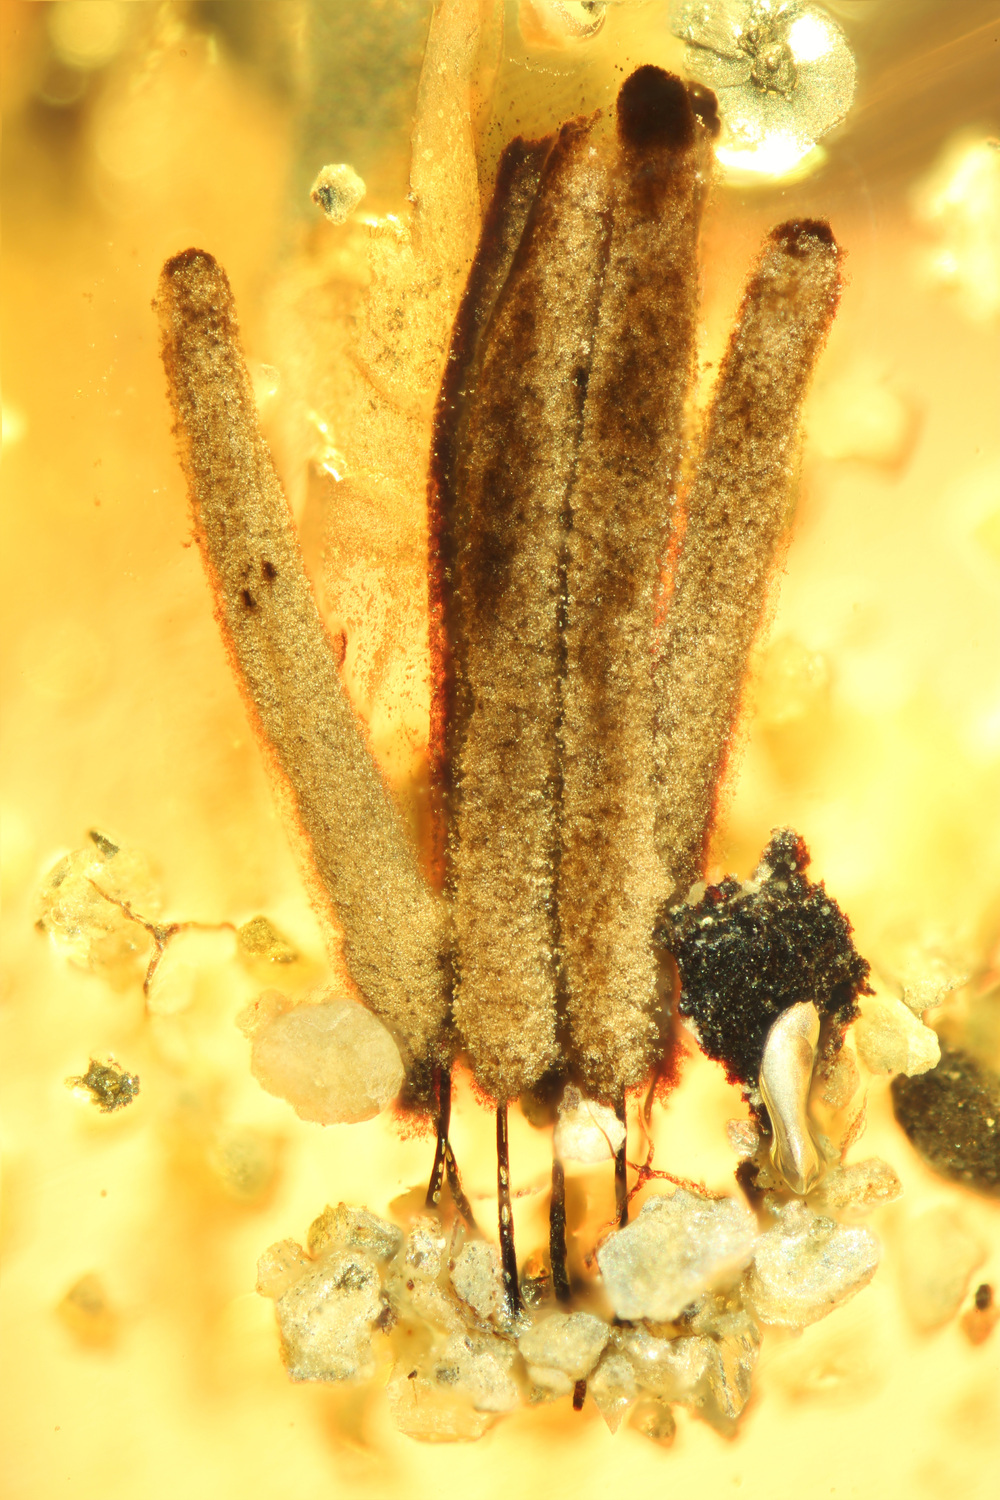 Sporocarps of amber preserved slime mould from the mesozoic